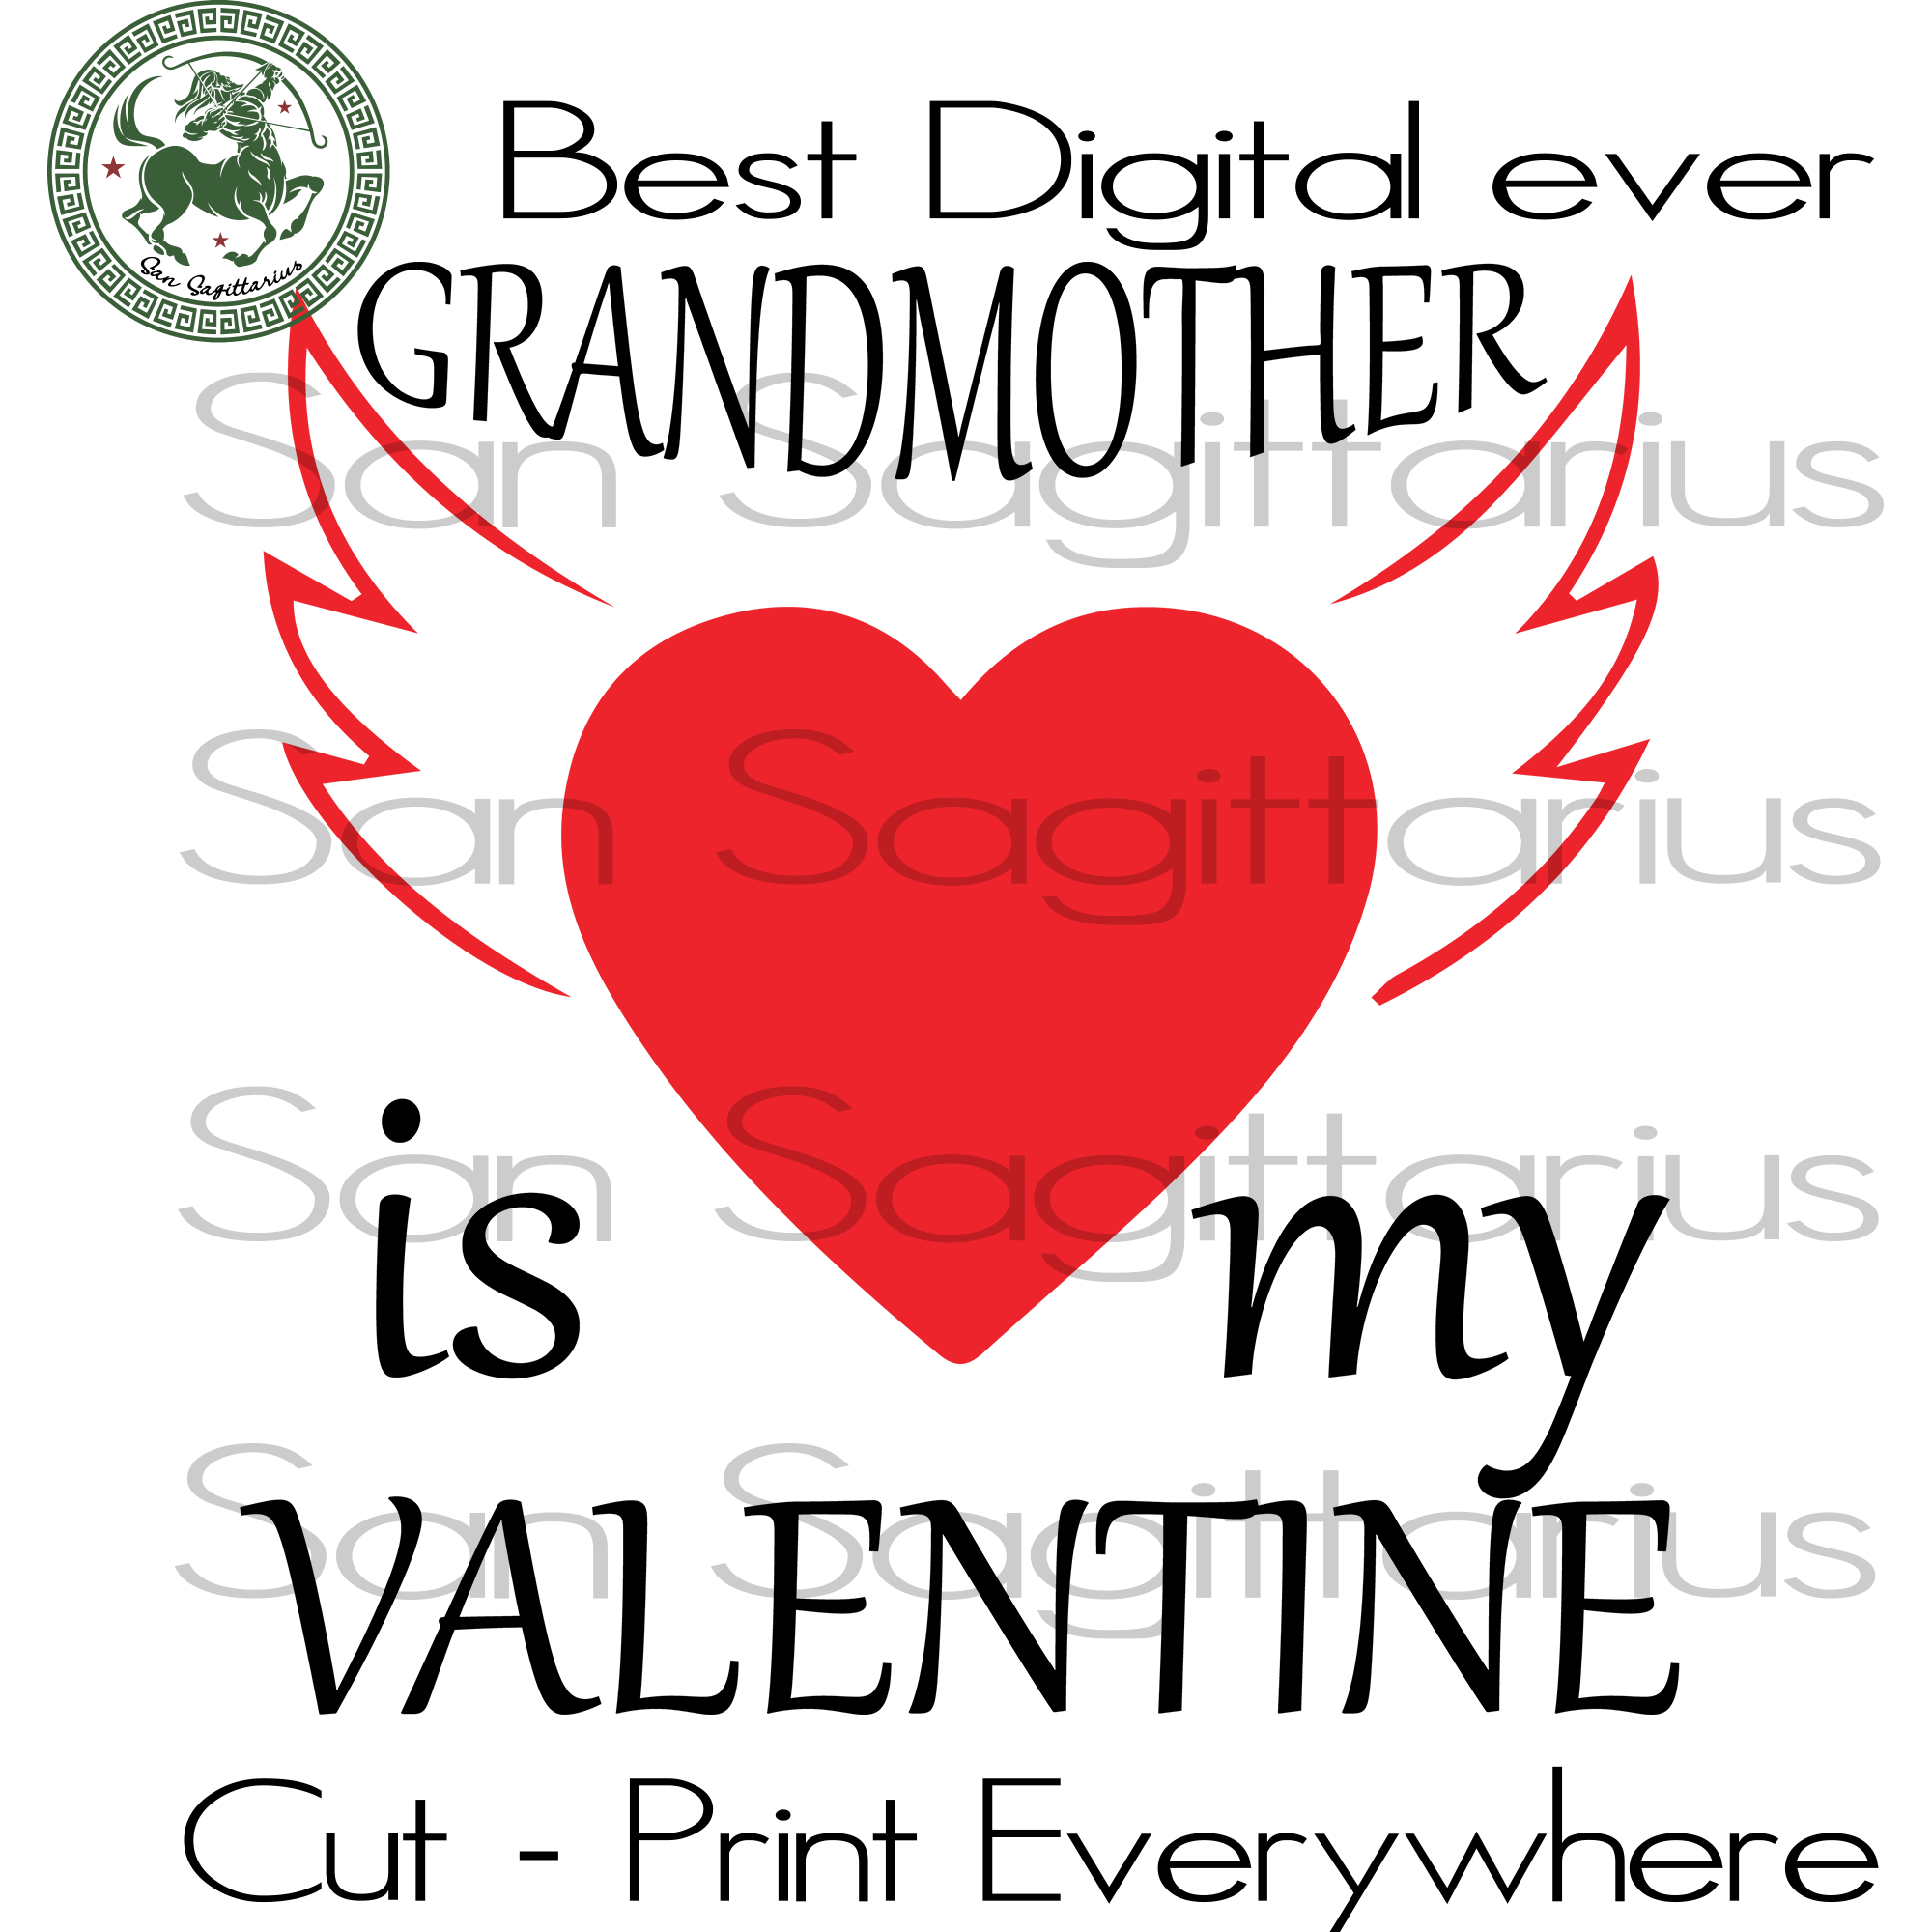 Gift For Grandmother Svg, Valentine's Day Cut File, Grandmother Valentine, Grandma Life, Family SVG Files For Cricut Silhouette Instant Download | San Sagittarius